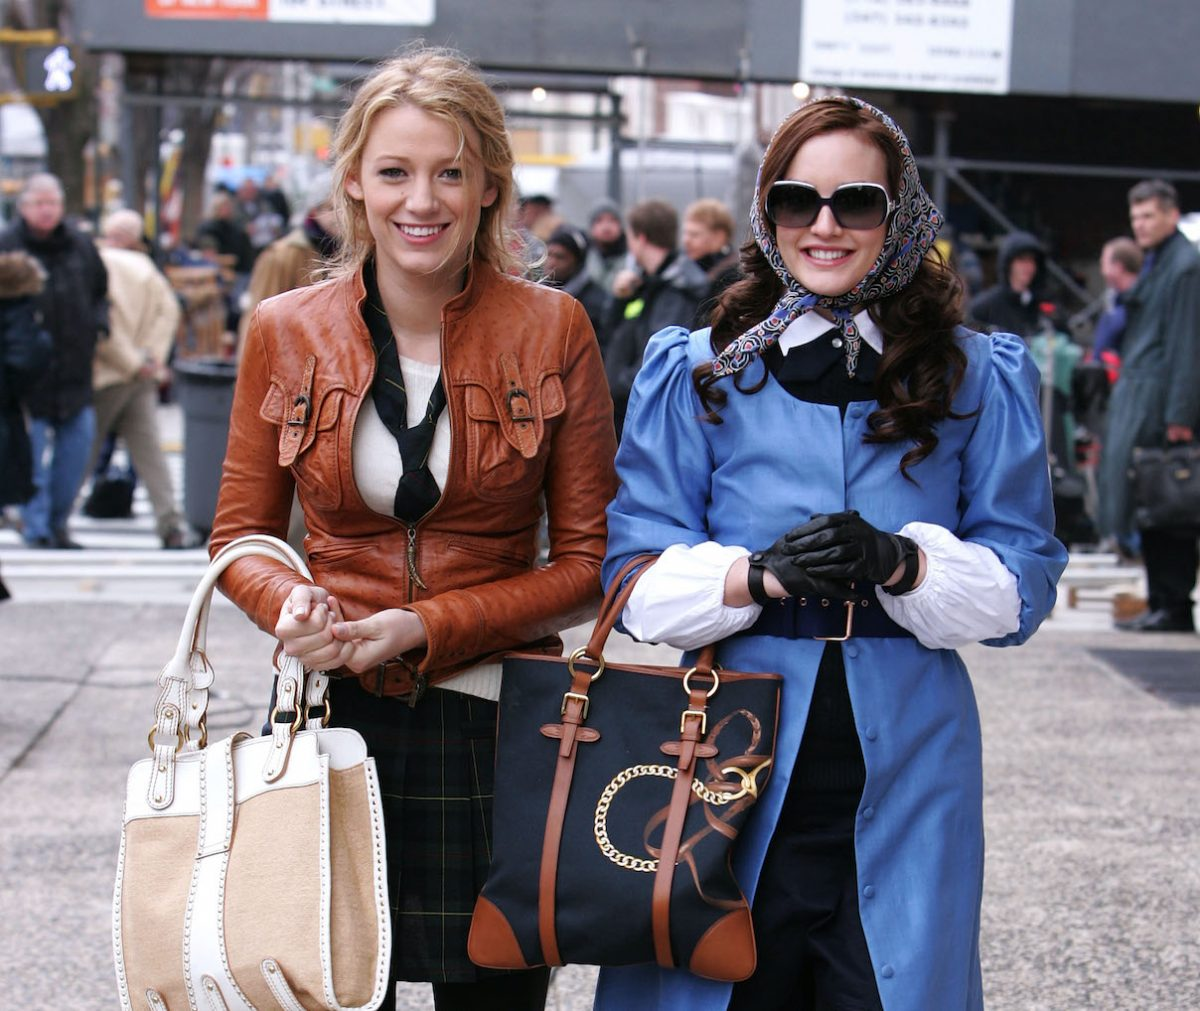 Blake Lively and Leighton Meester on location for 'Gossip Girl'